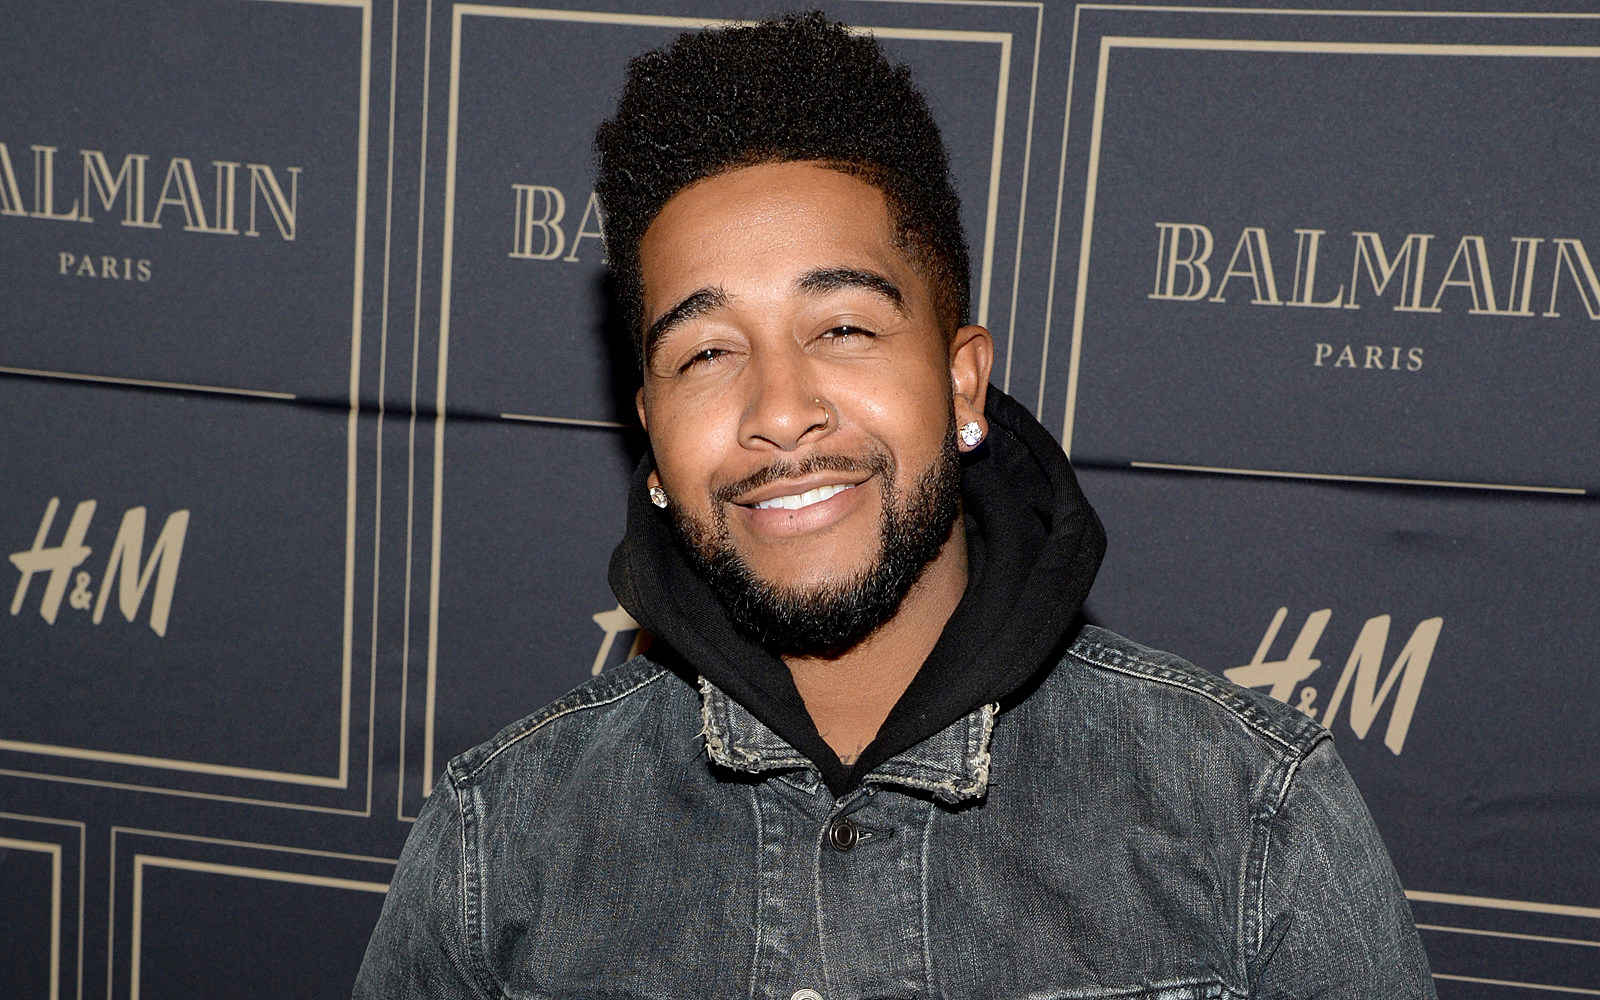 Omarion Responds to 2016 Grammys Nomination Snub  XXL - Chris Brown Hairstyle